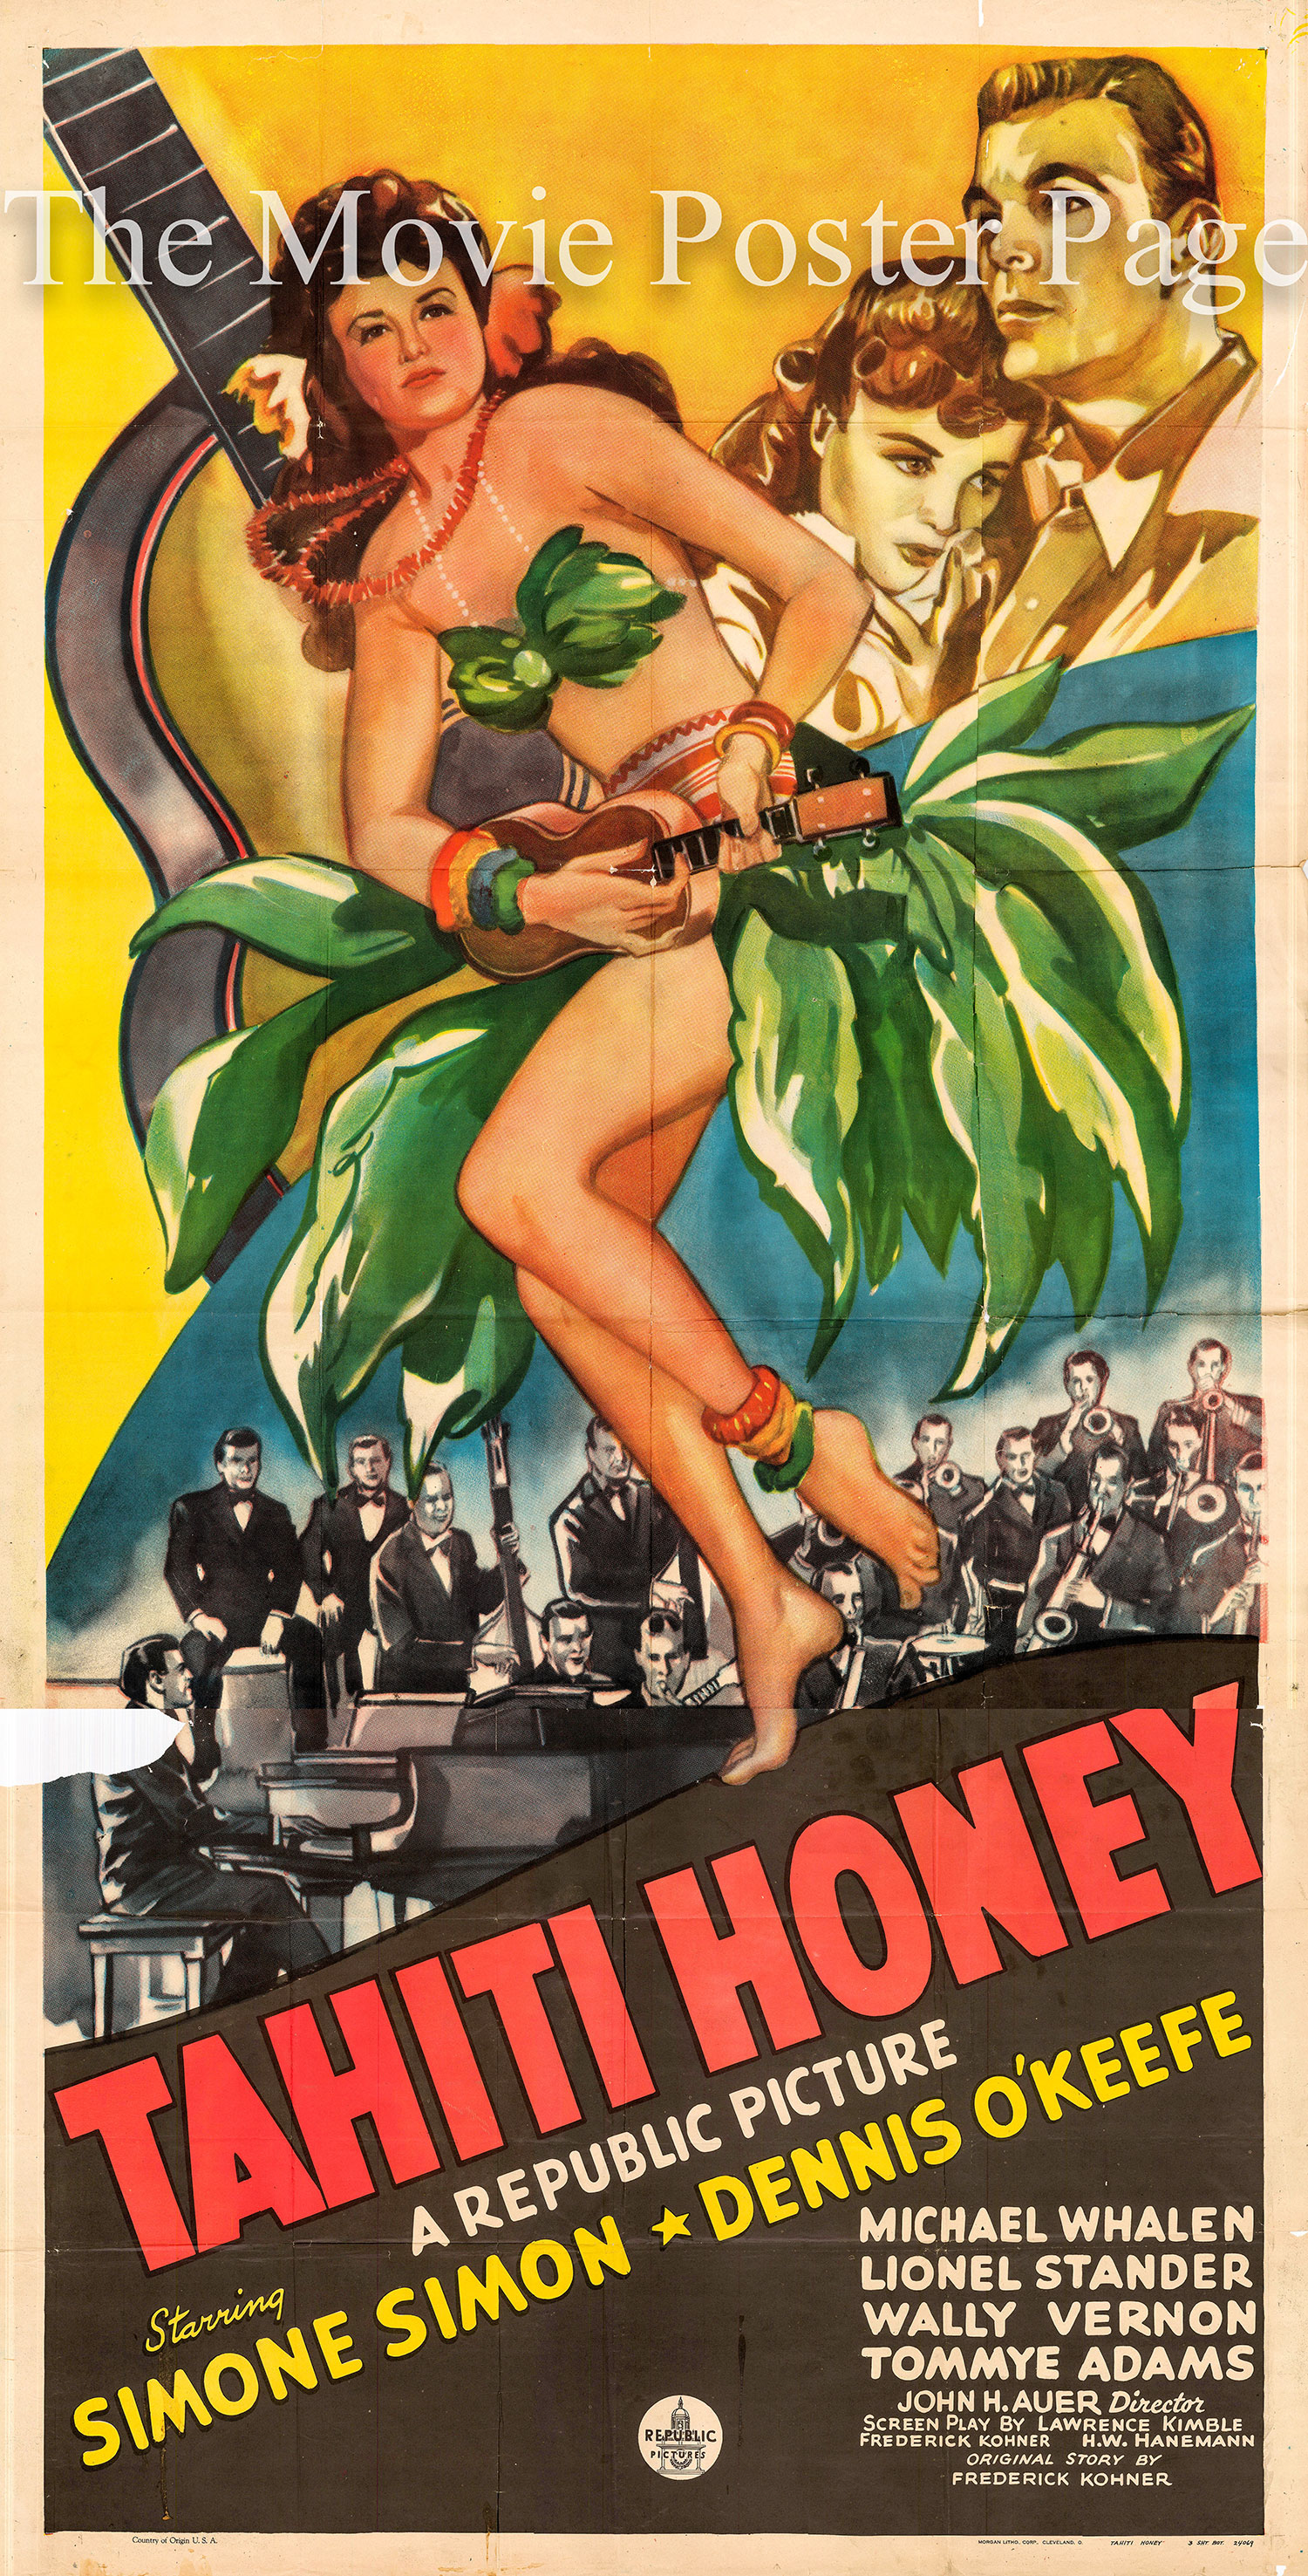 Pictured is a US three-sheet promotional poster for the 1943 John H. Auer film Tahiti Honey starring Simone Simon.